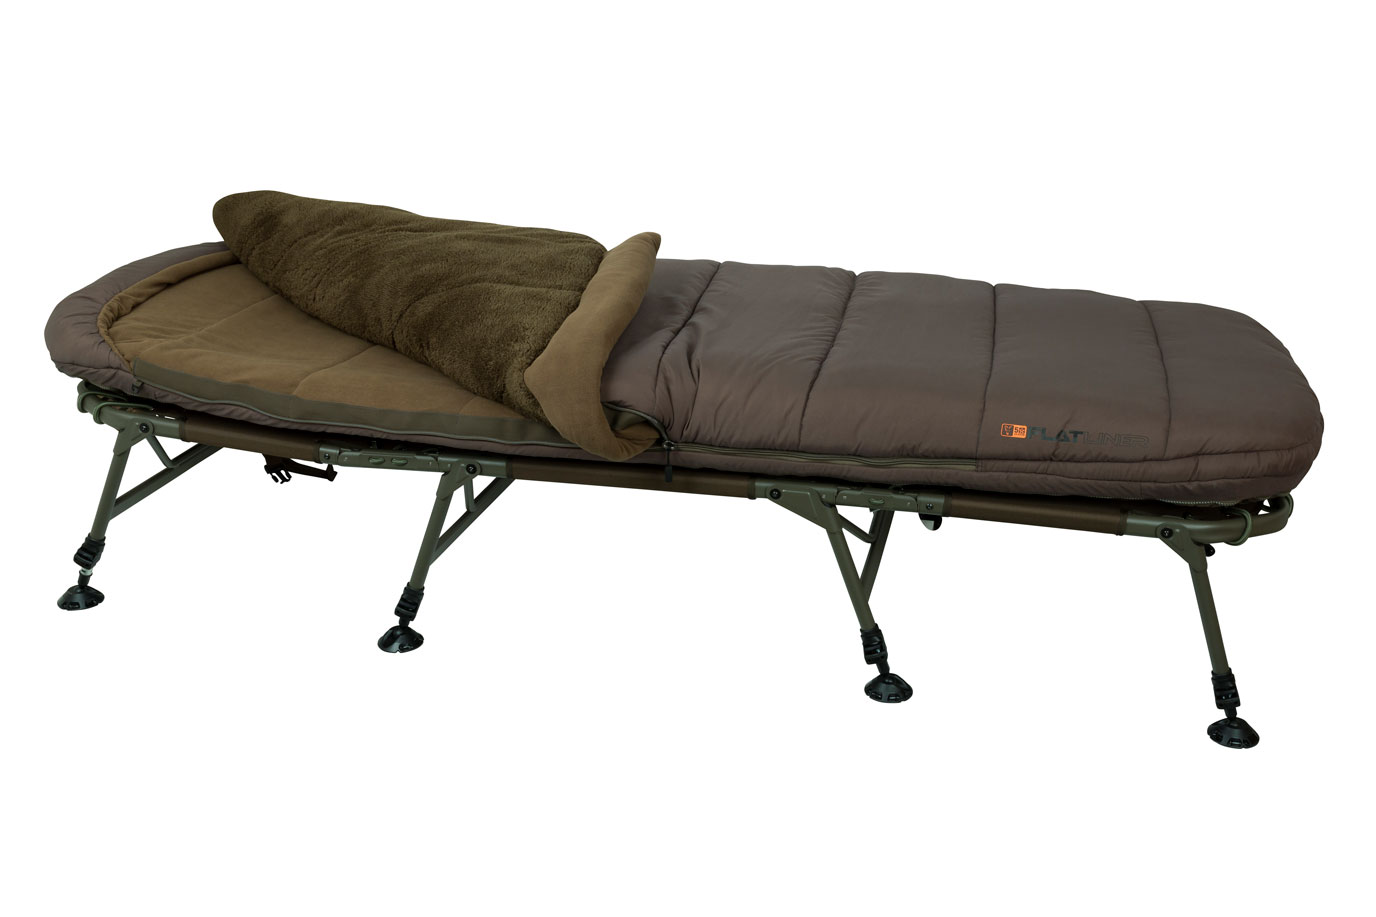 FLATLINER 8 LEG 5 SEASON SLEEP SYSTEM